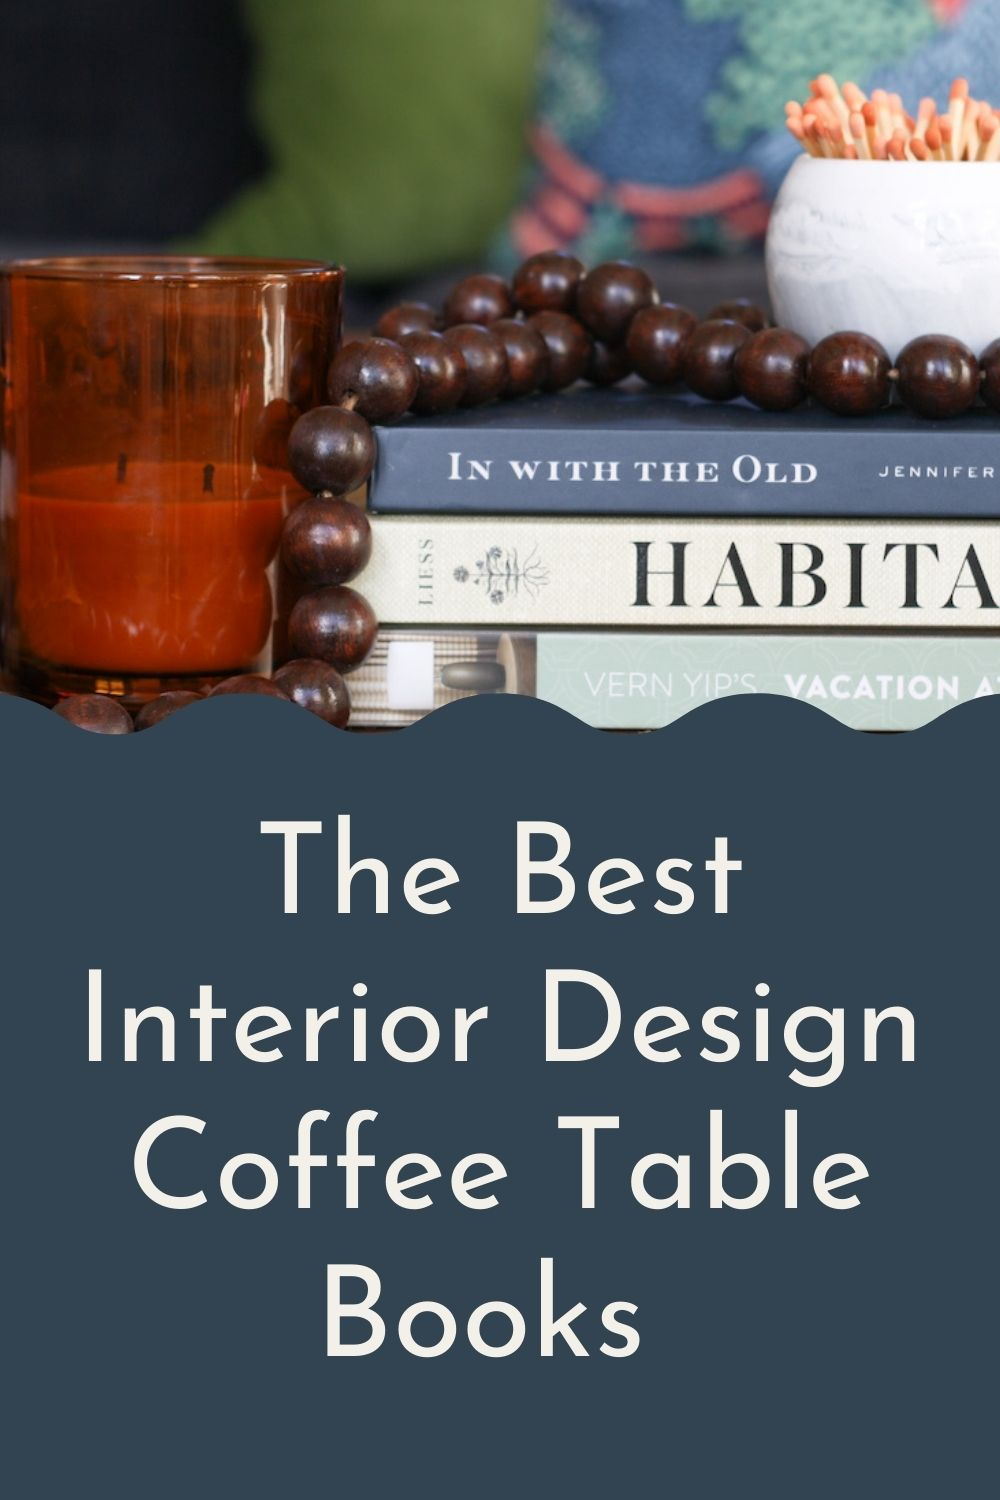 Coffee Table Books I\'m Loving Right Now